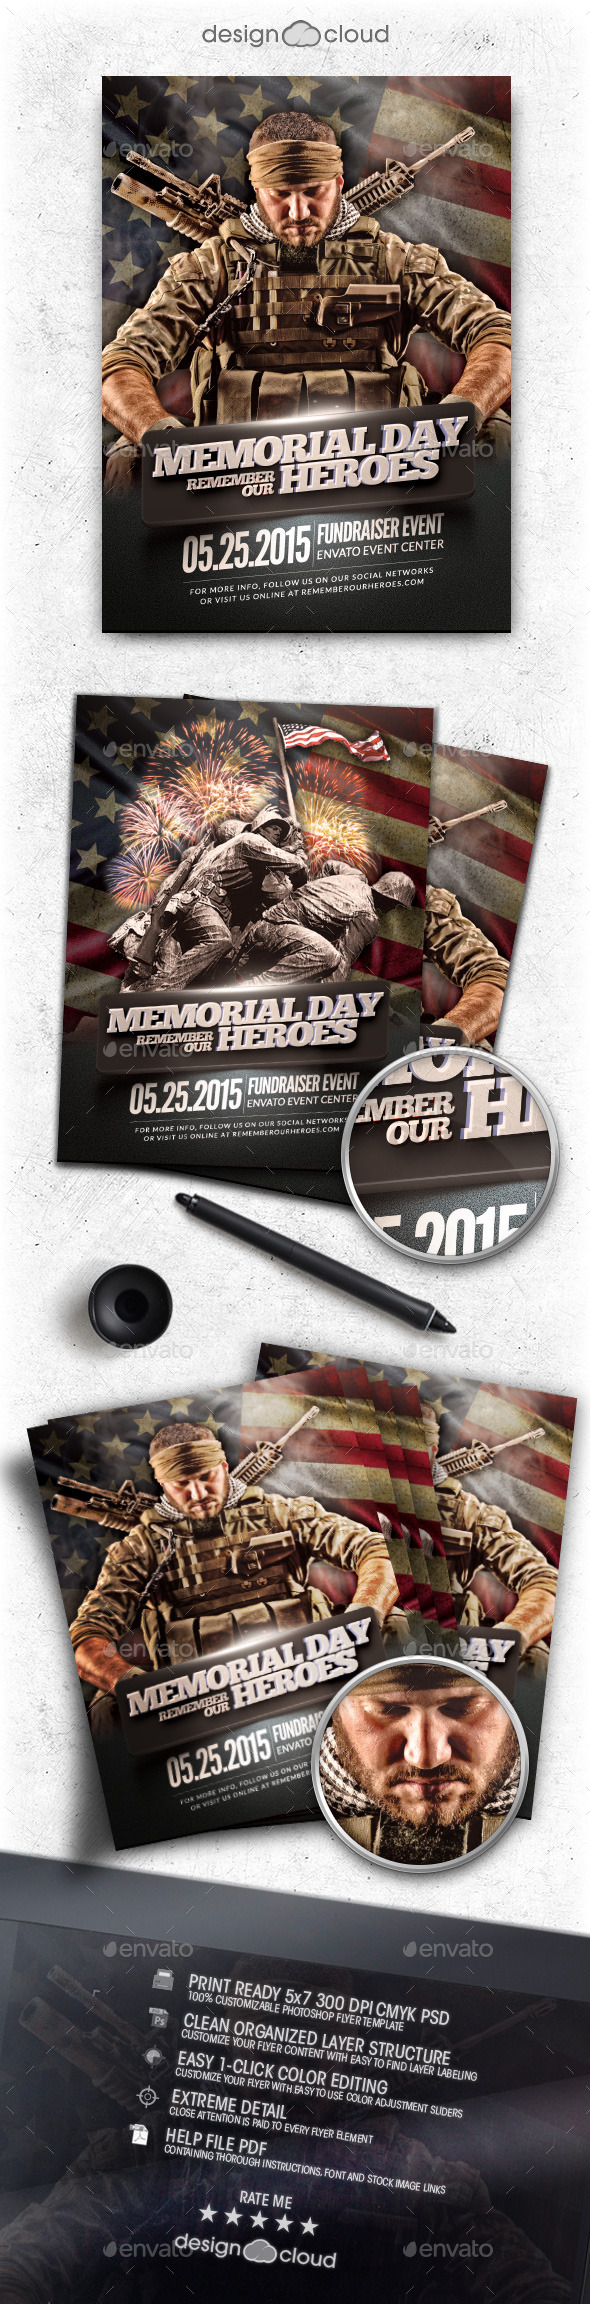 Memorial Day Remember Event Flyer Template - Holidays Events